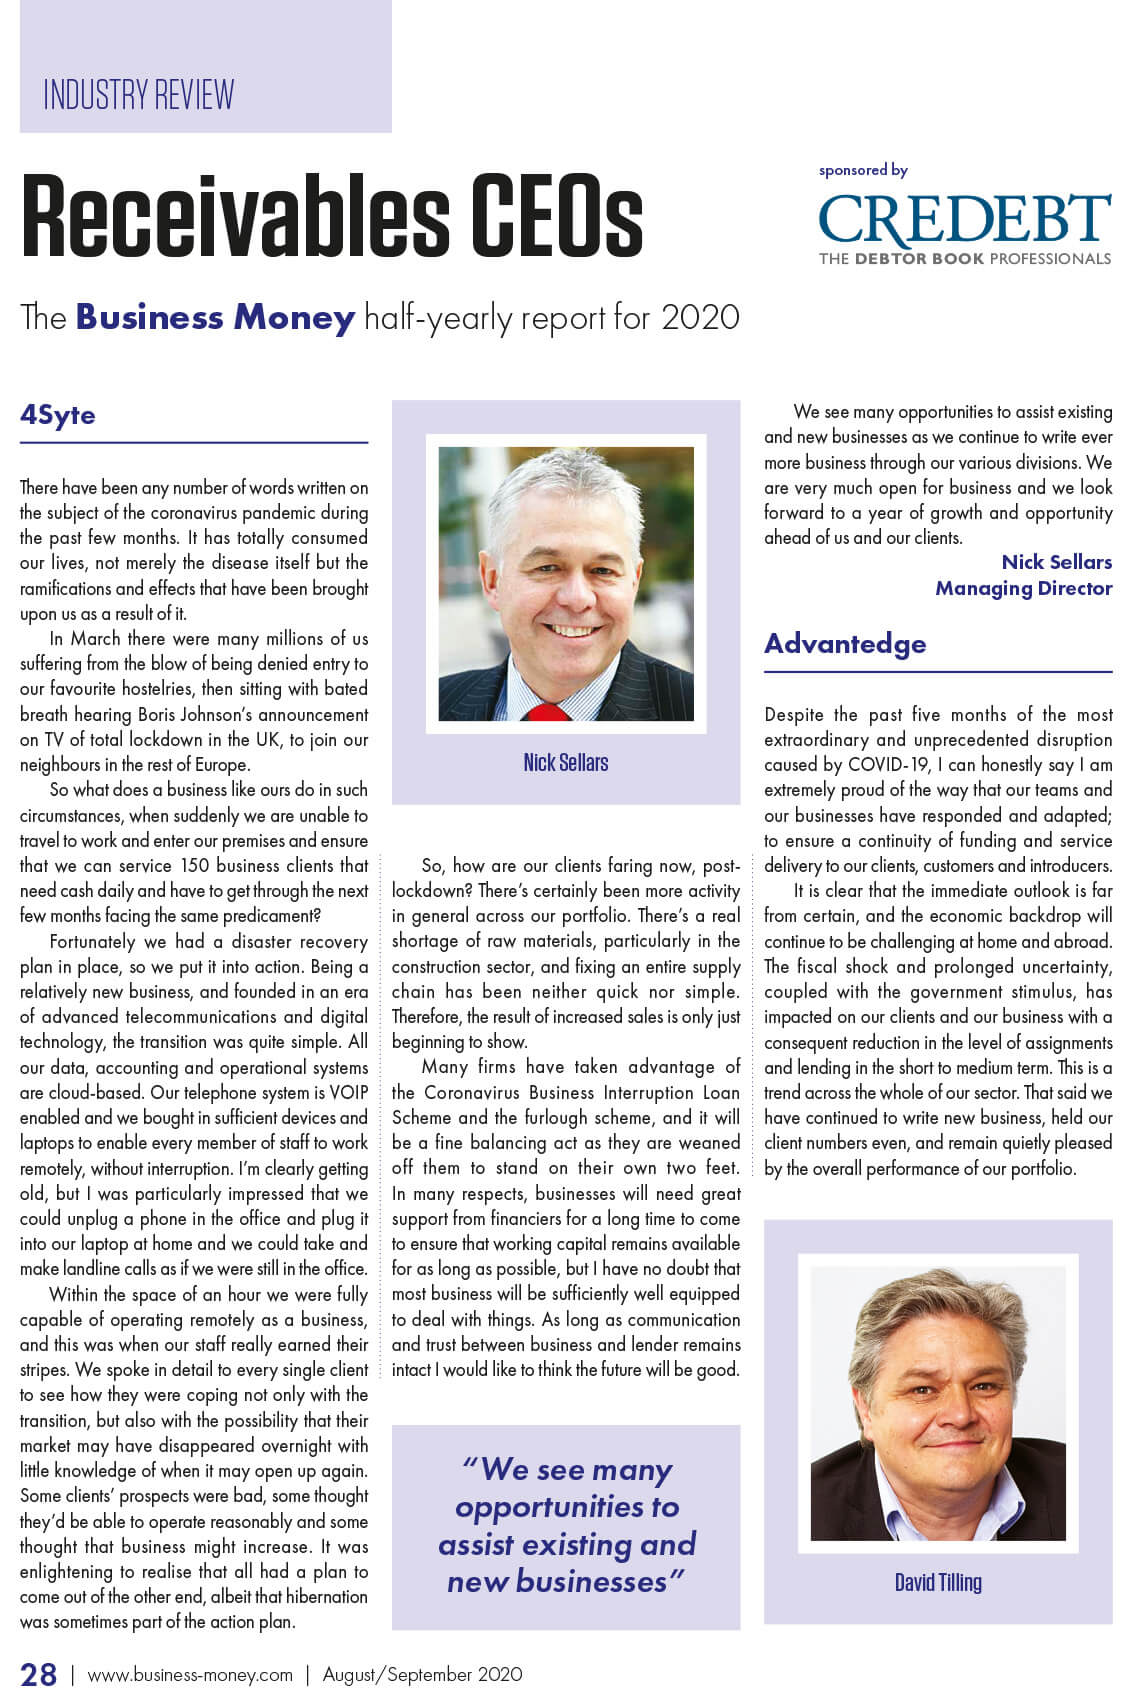 Business Money_CEOs Half Yearly Report_2020_4Syte